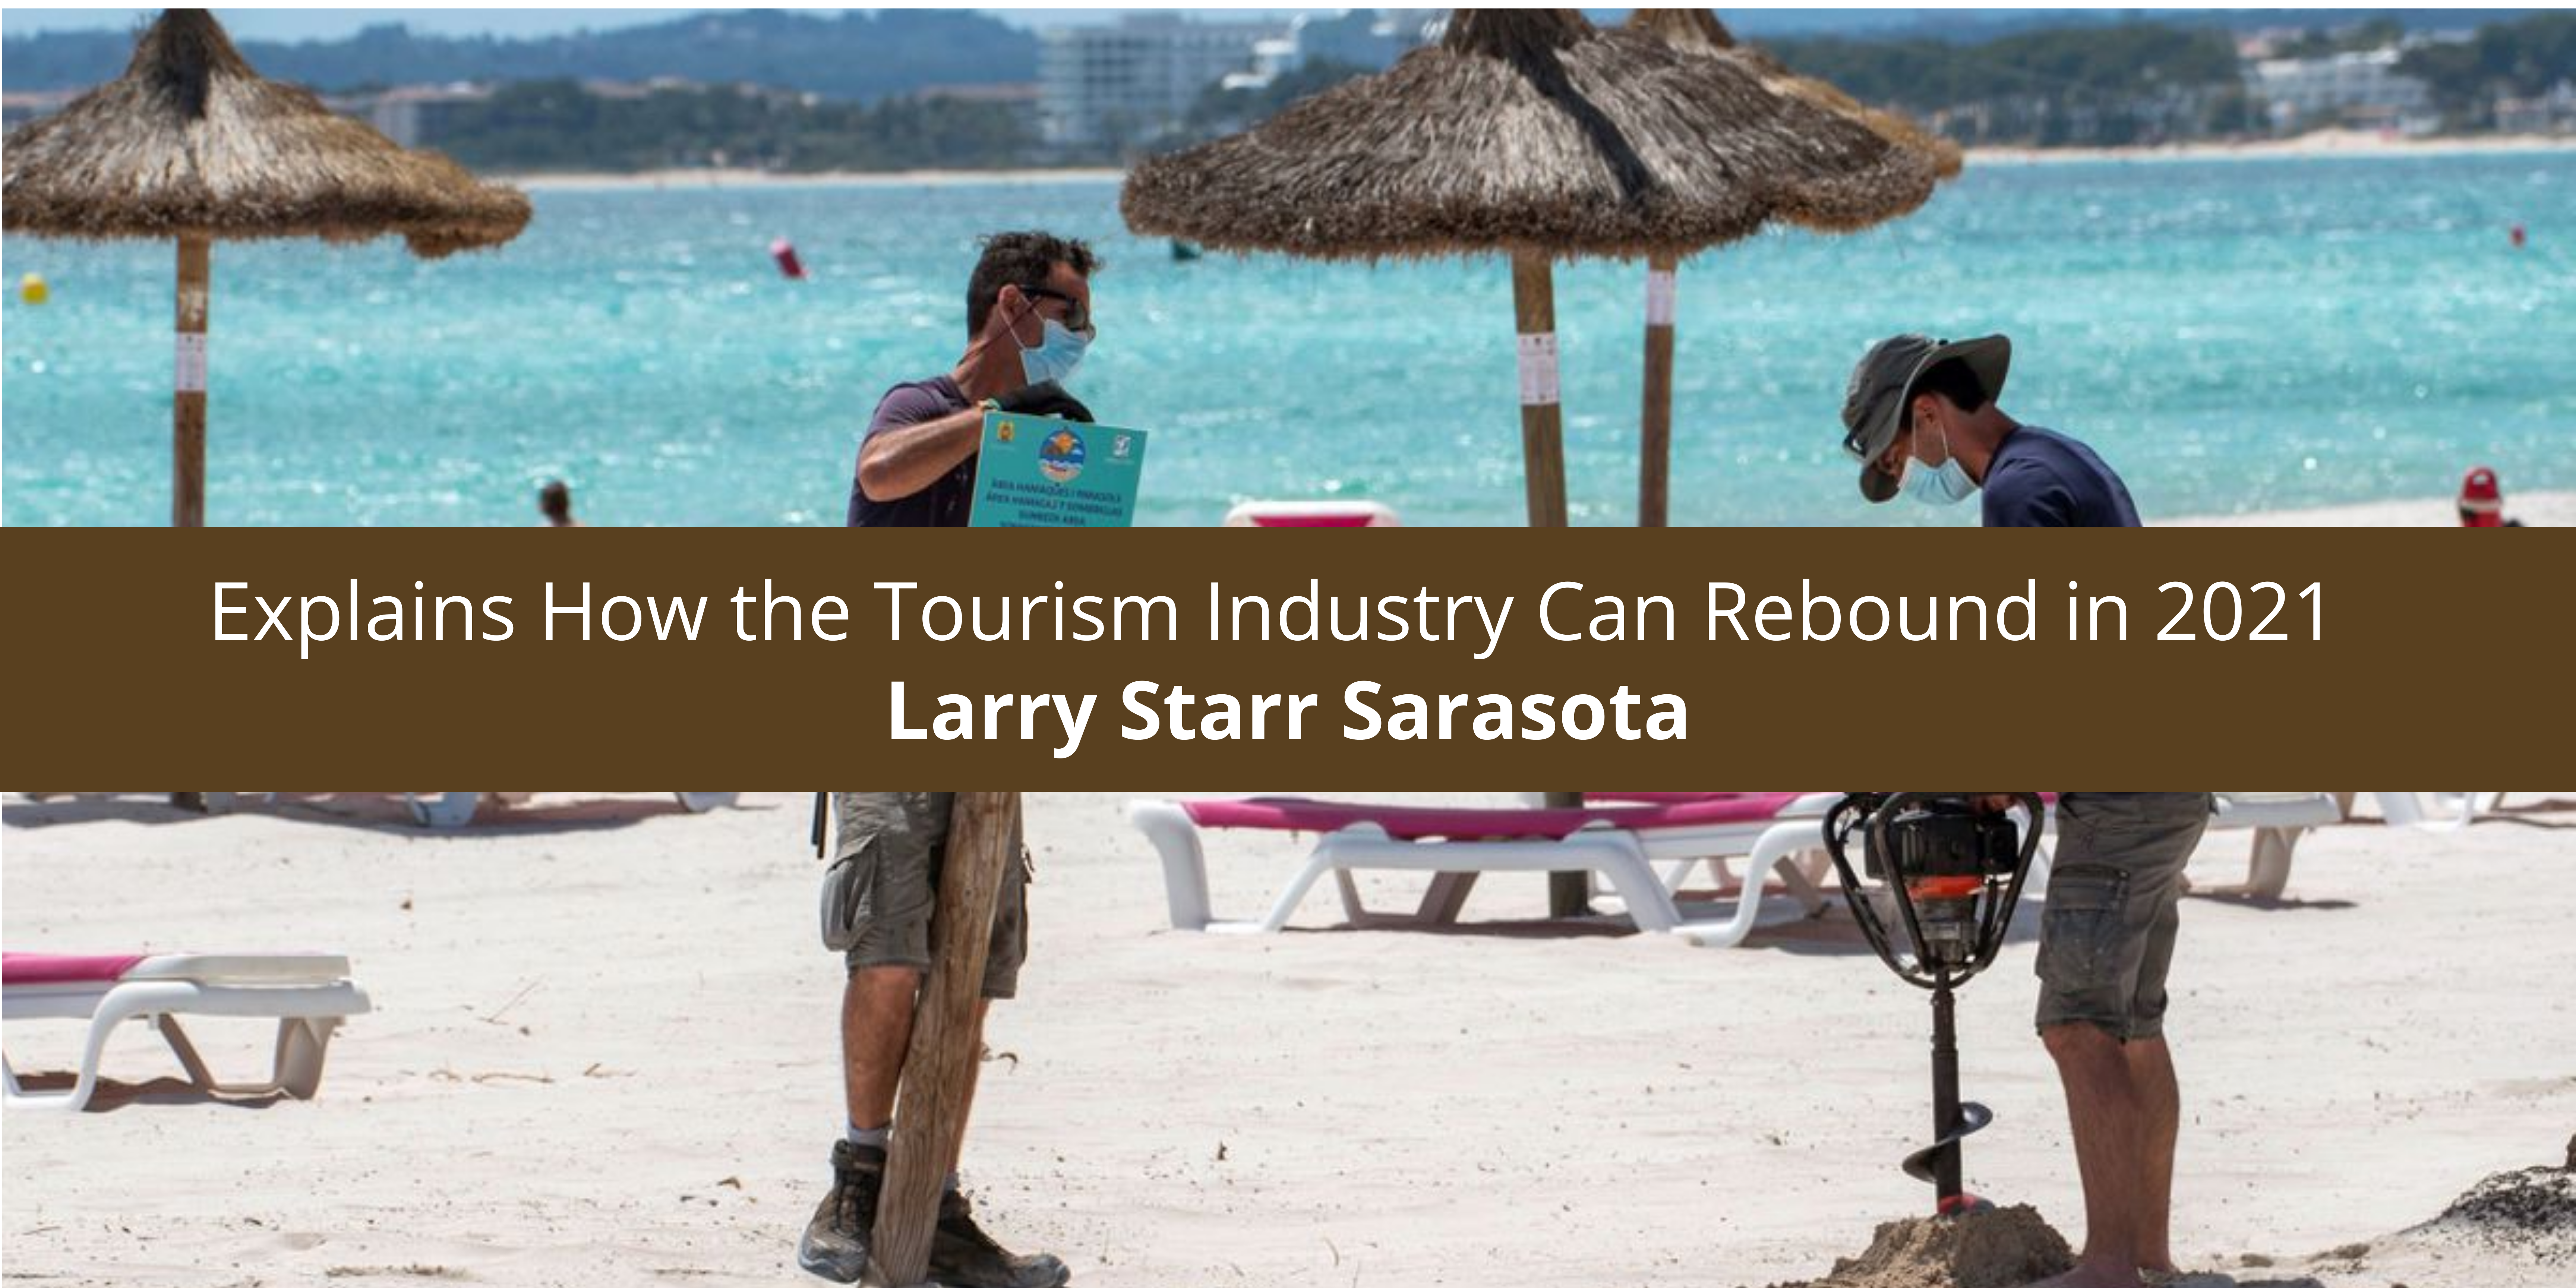 Larry Starr Sarasota Explains How the Tourism Industry Can Rebound in 2021